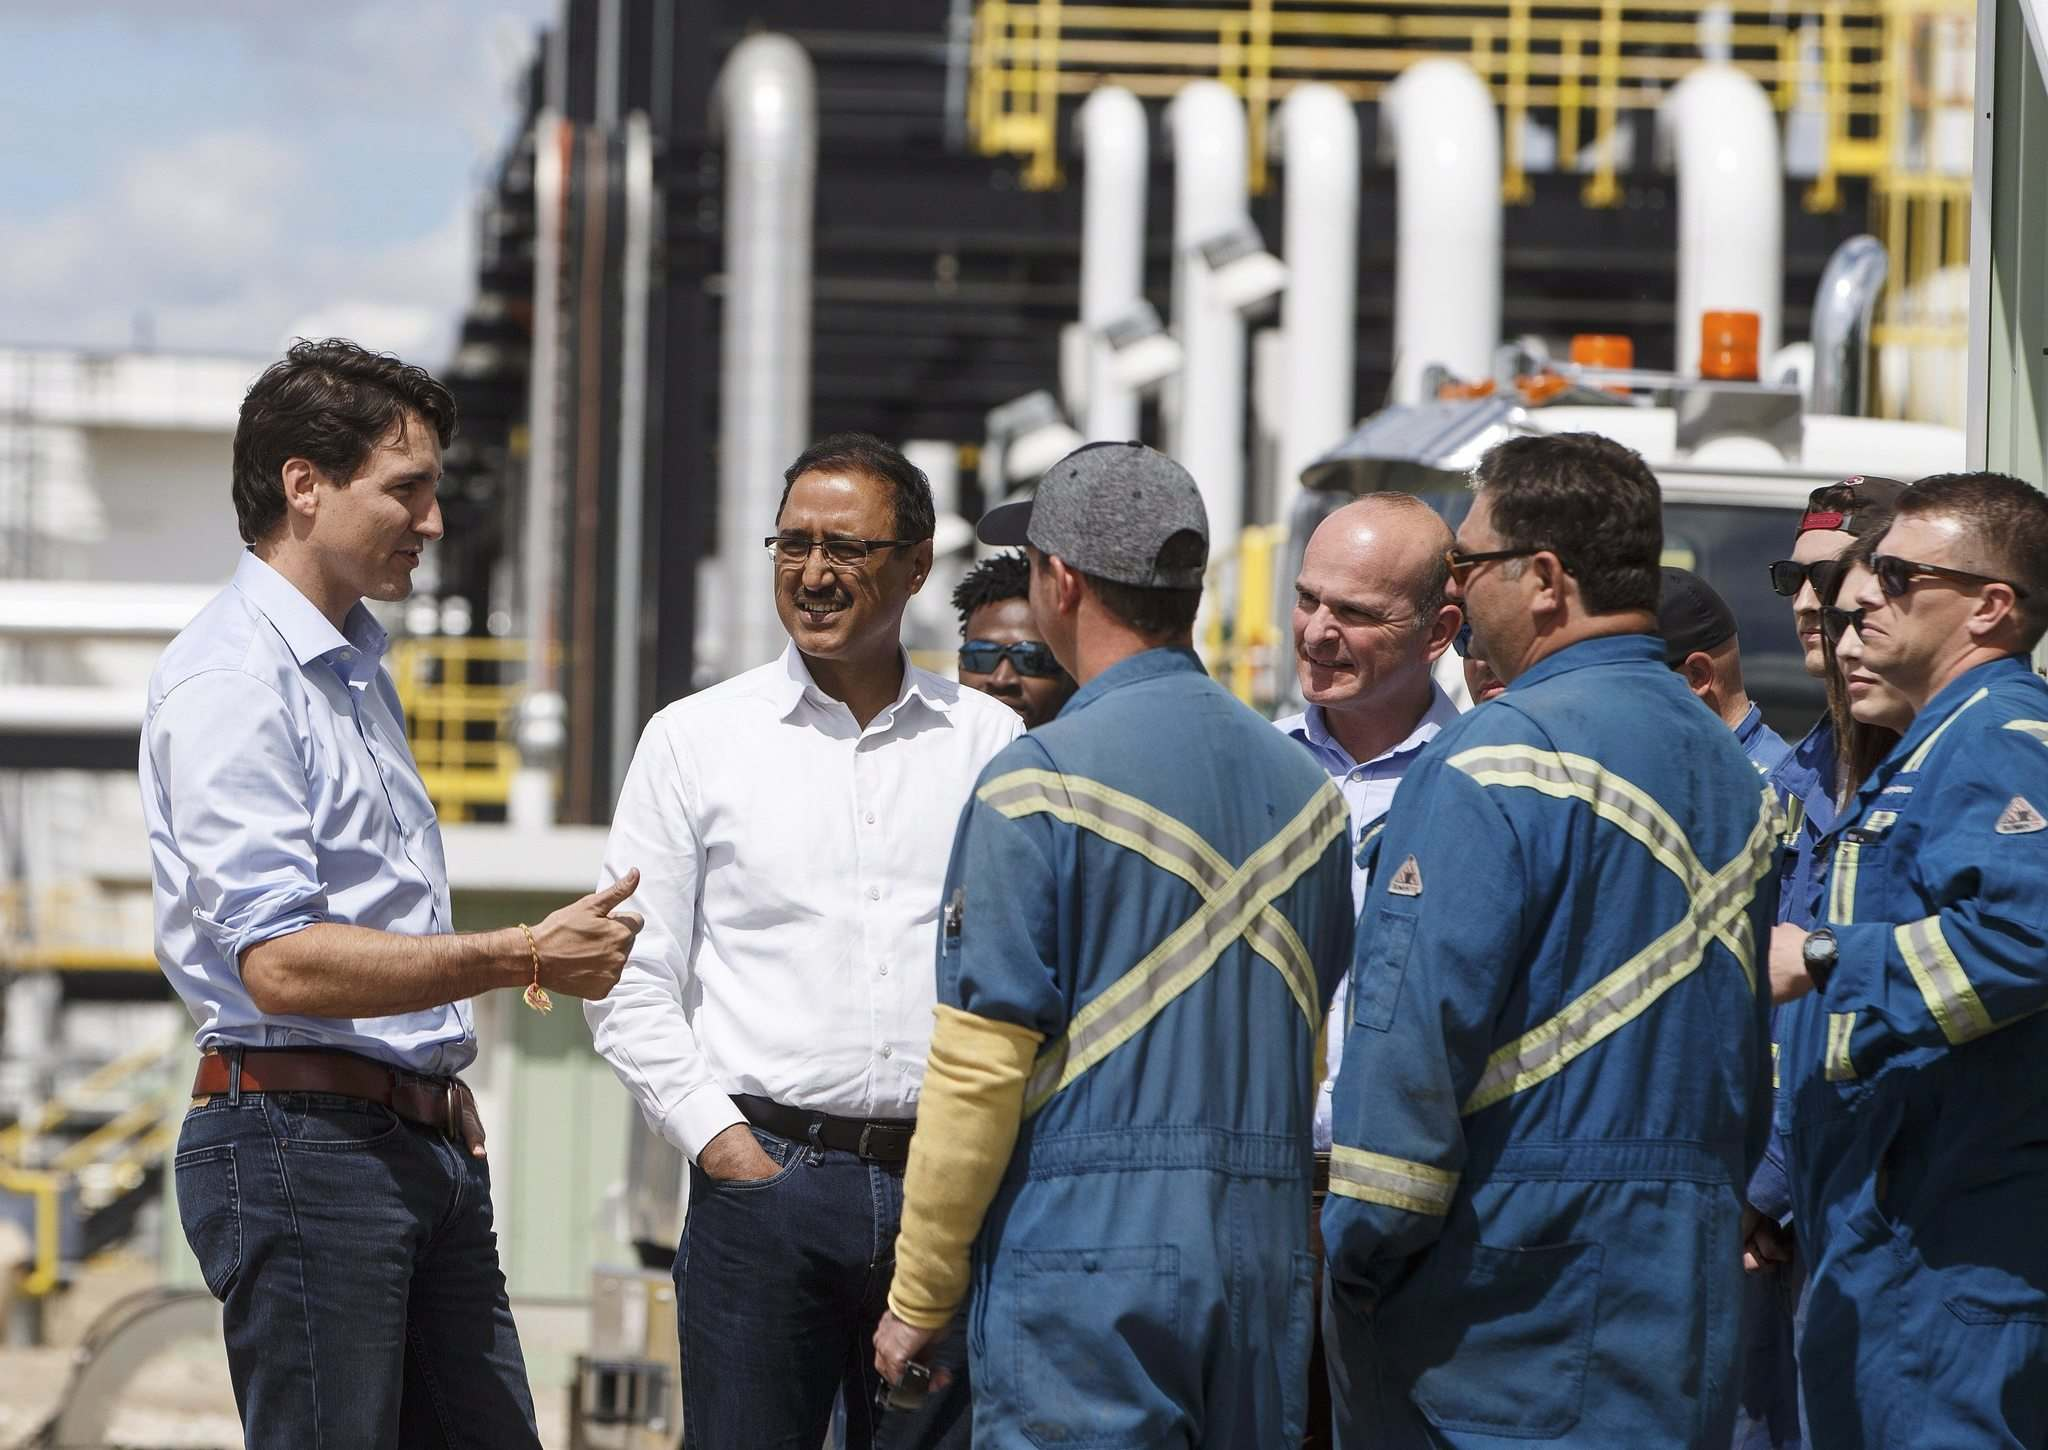 Jason Franson / The Canadian Press</p><p>Prime Minister Justin Trudeau meets with workers at the Kinder Morgan terminal in Edmonton on Tuesday.</p>